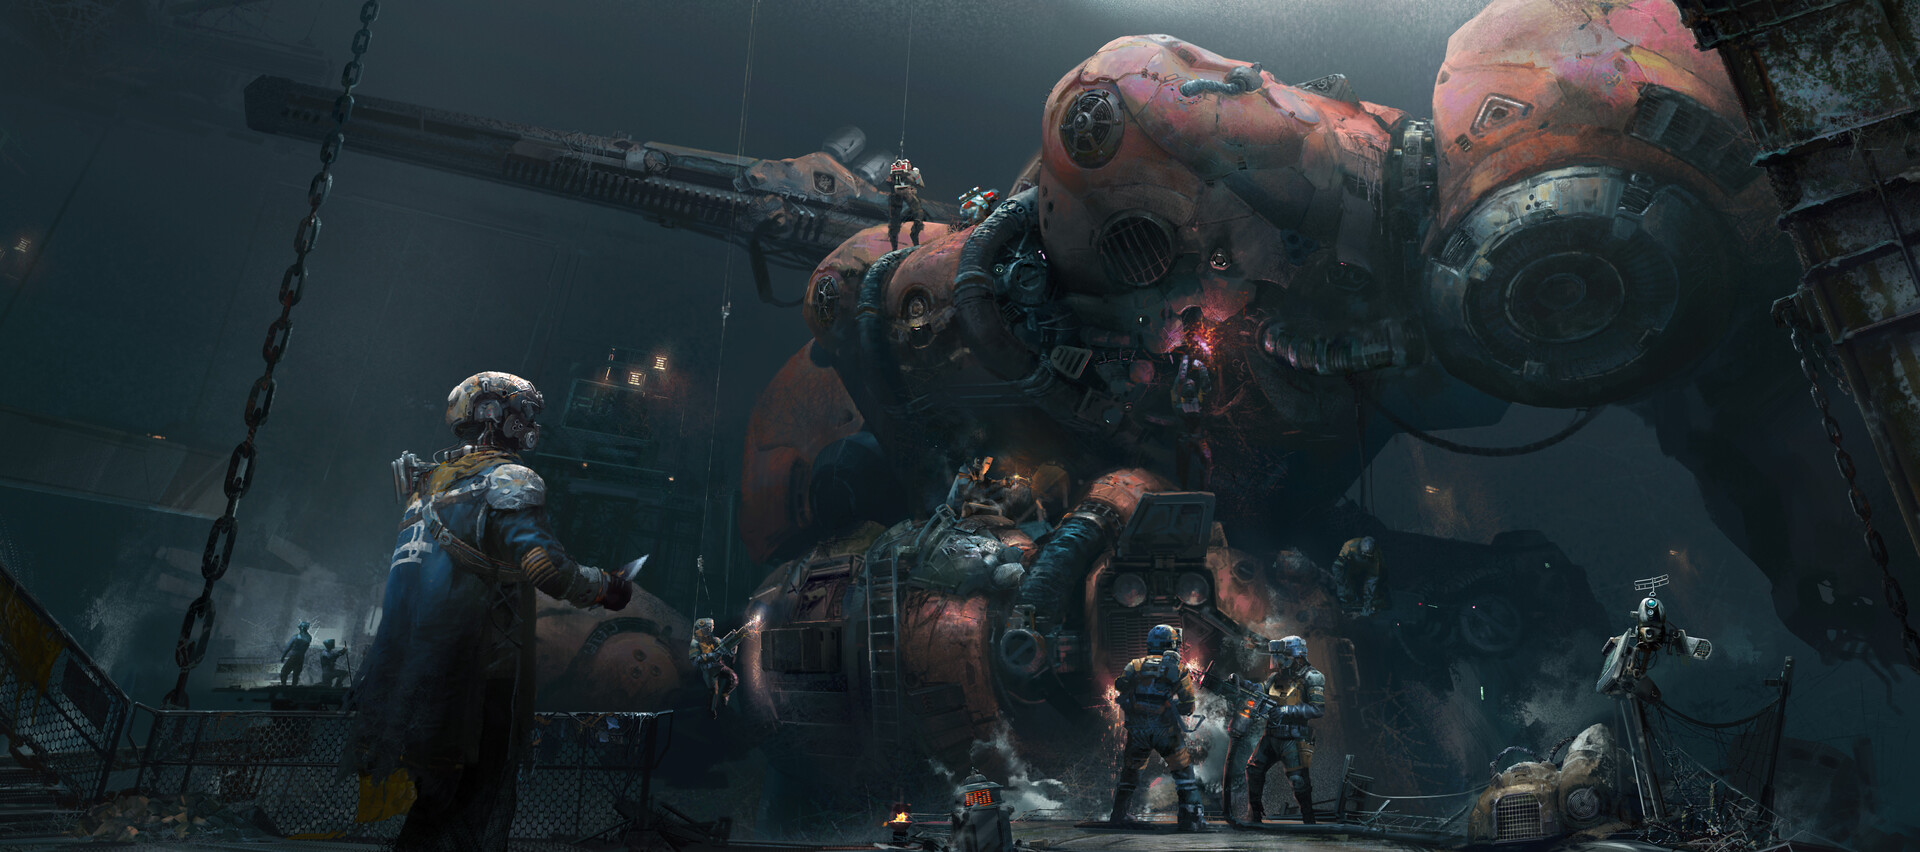 The Science Fiction Art of Zhu Liu